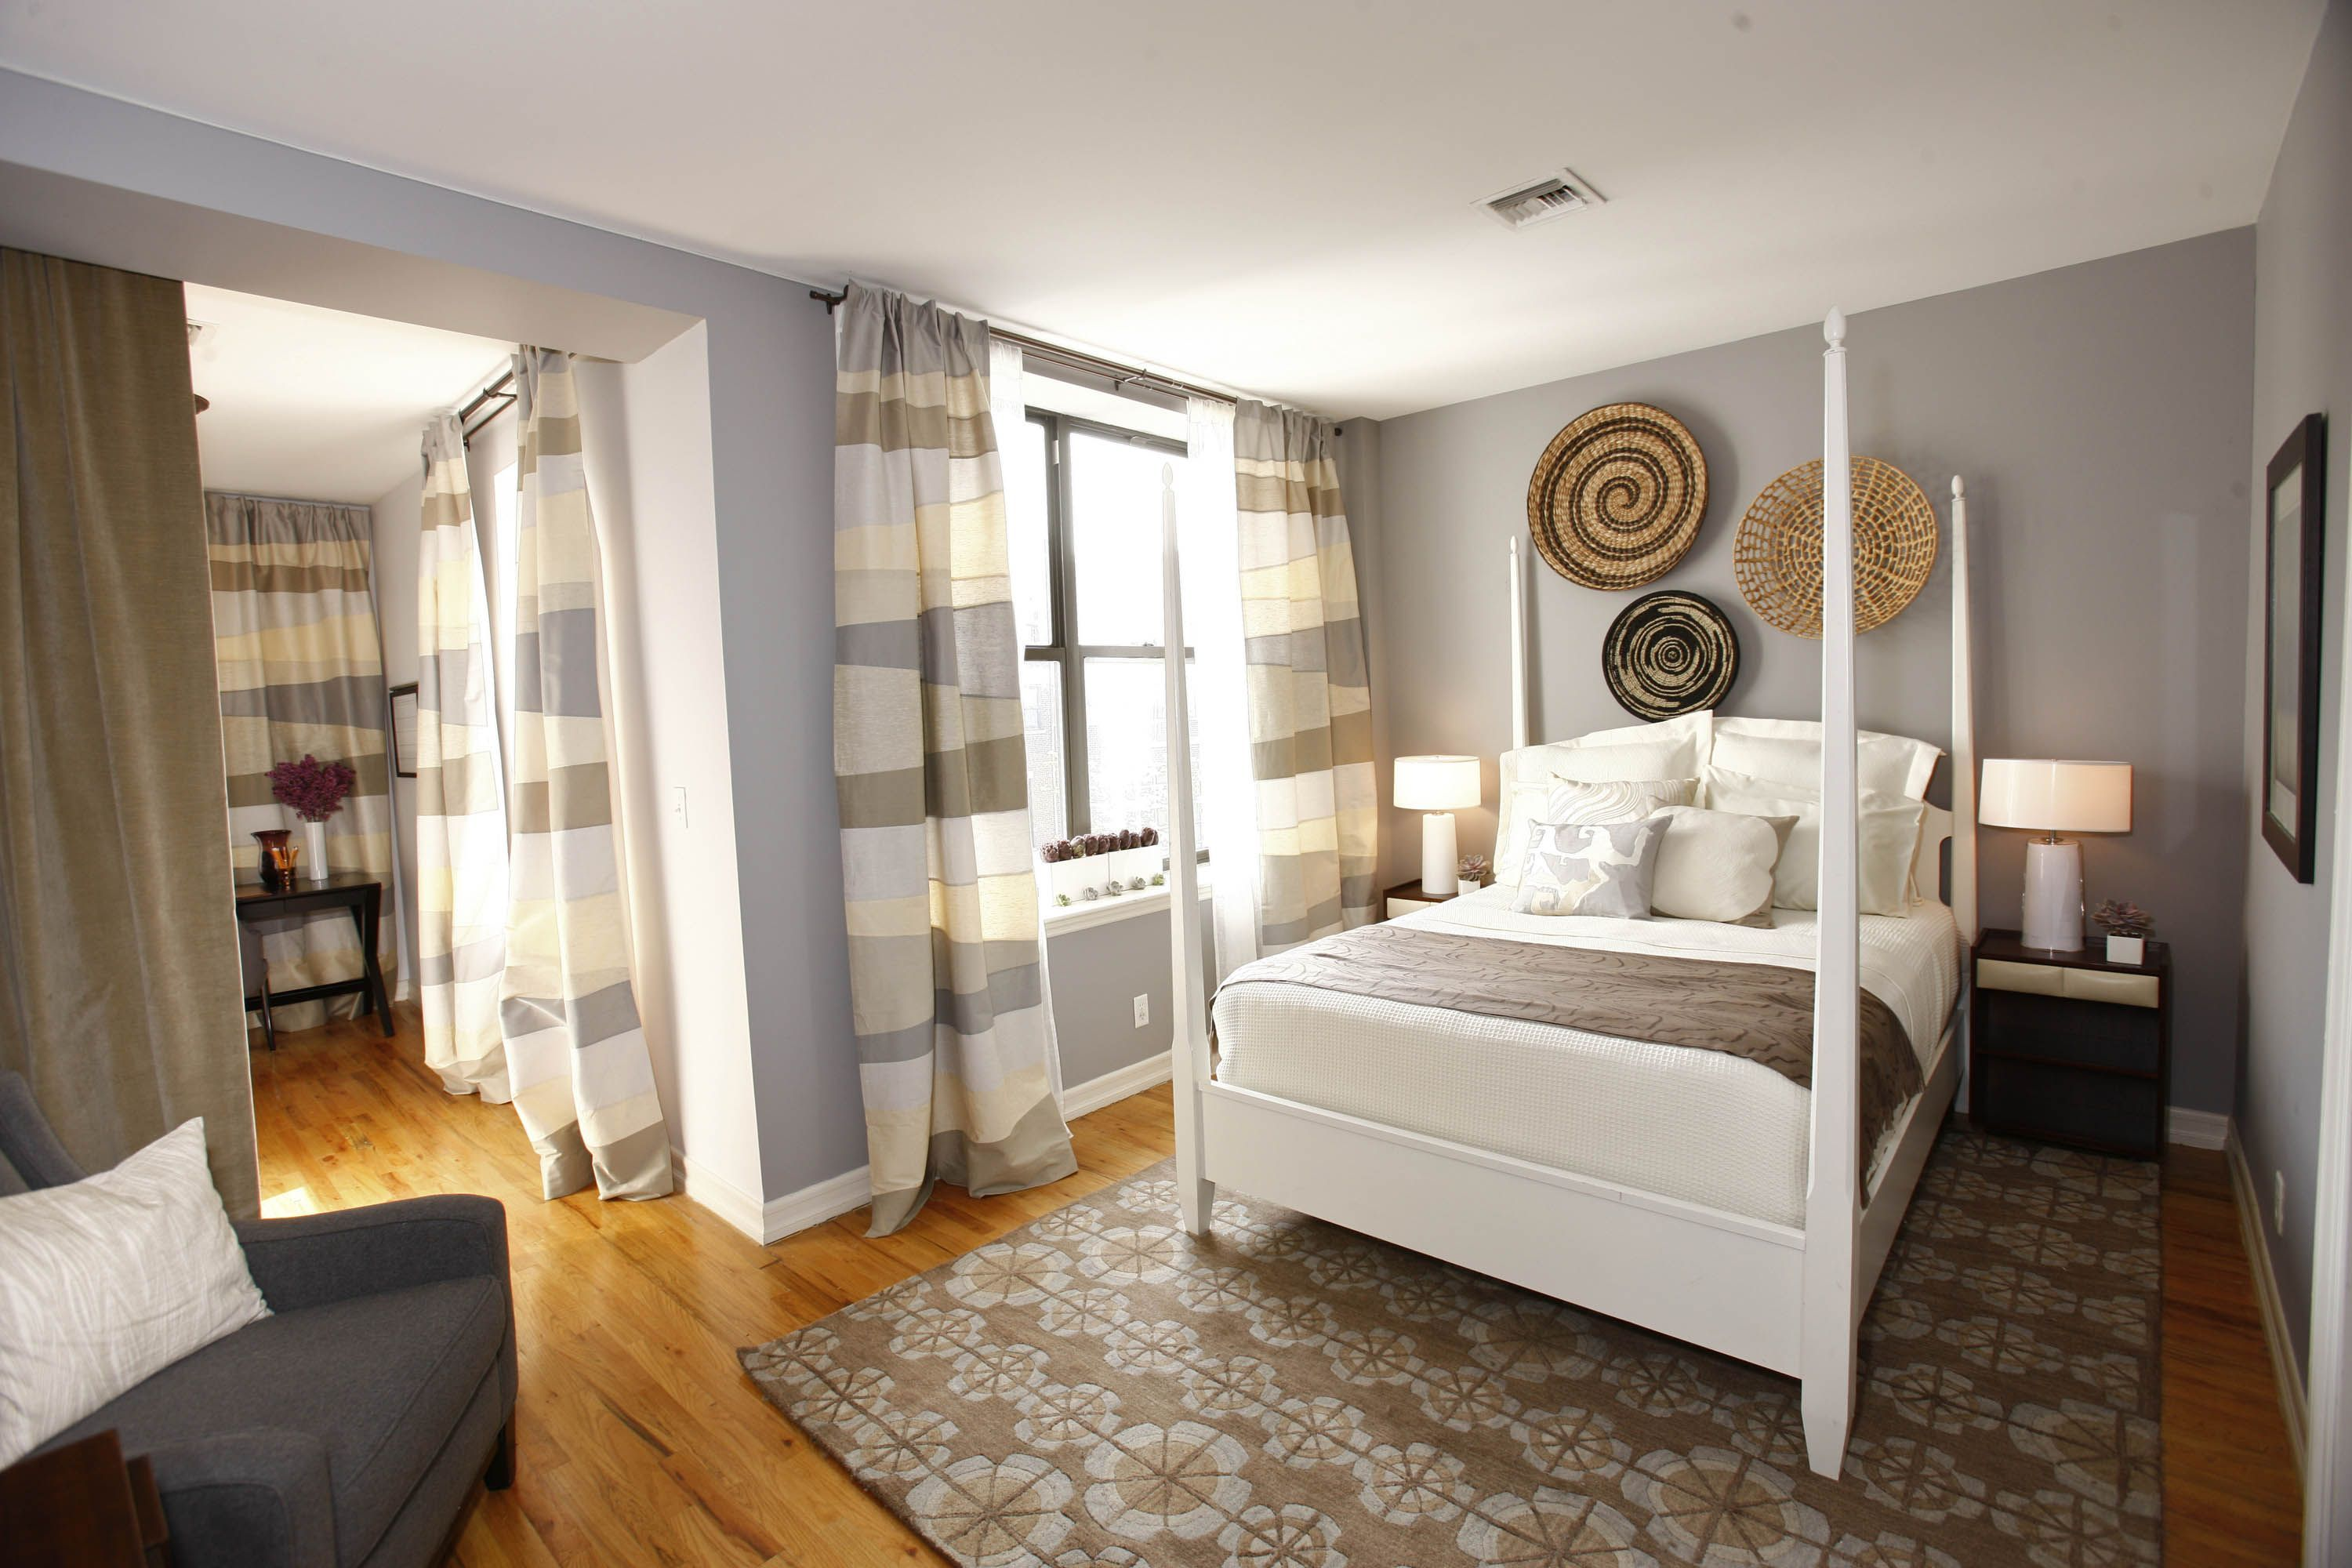 33 sabrina soto for inspiration setting every corner in your room rh pinterest com